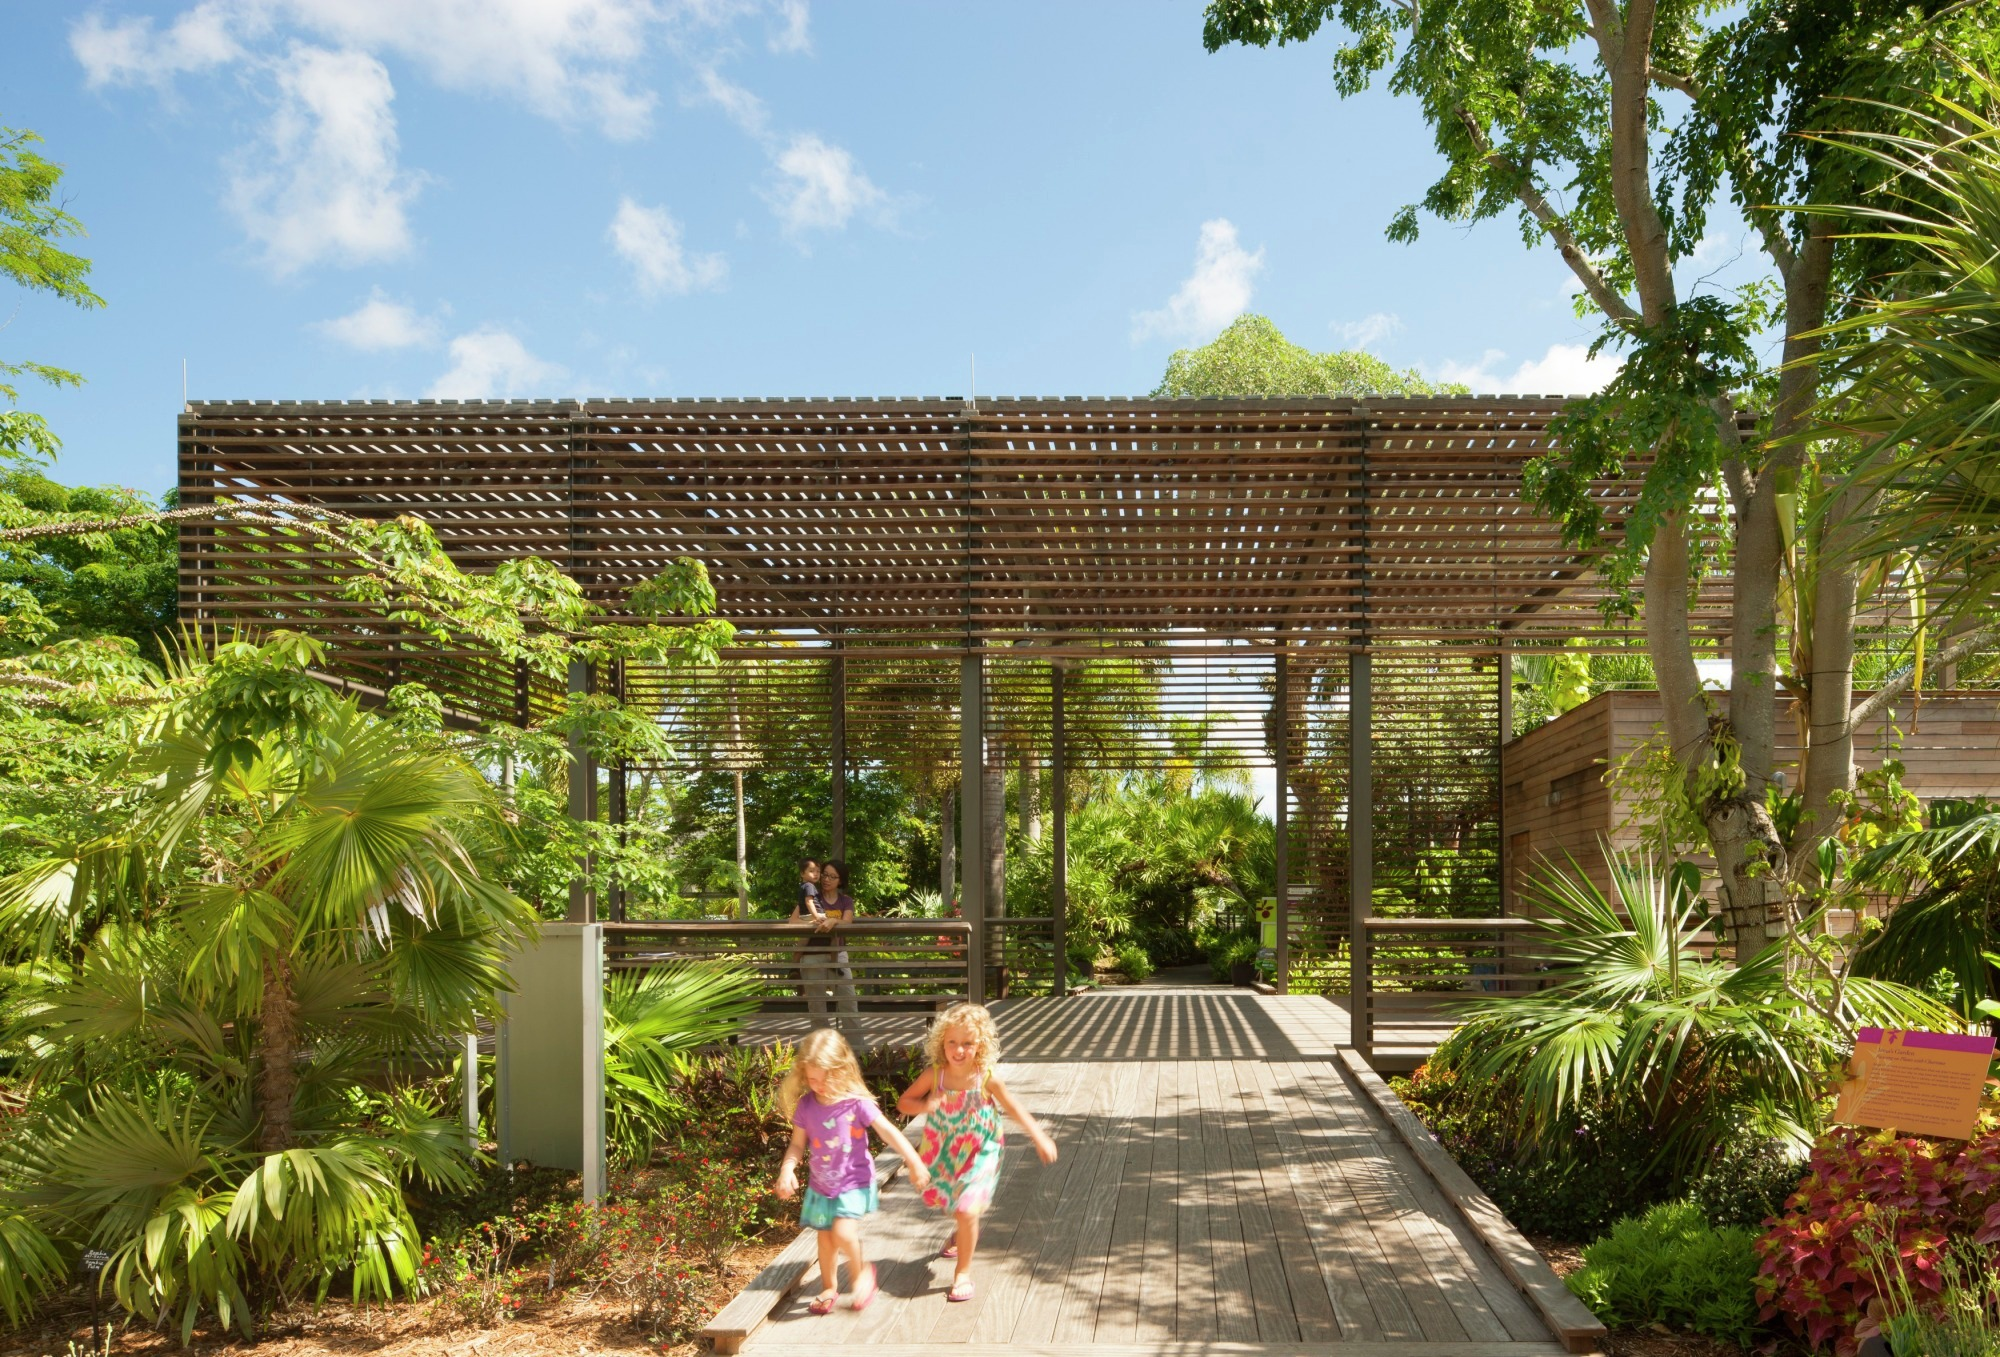 Naples botanical garden visitor center lake flato Architect florida